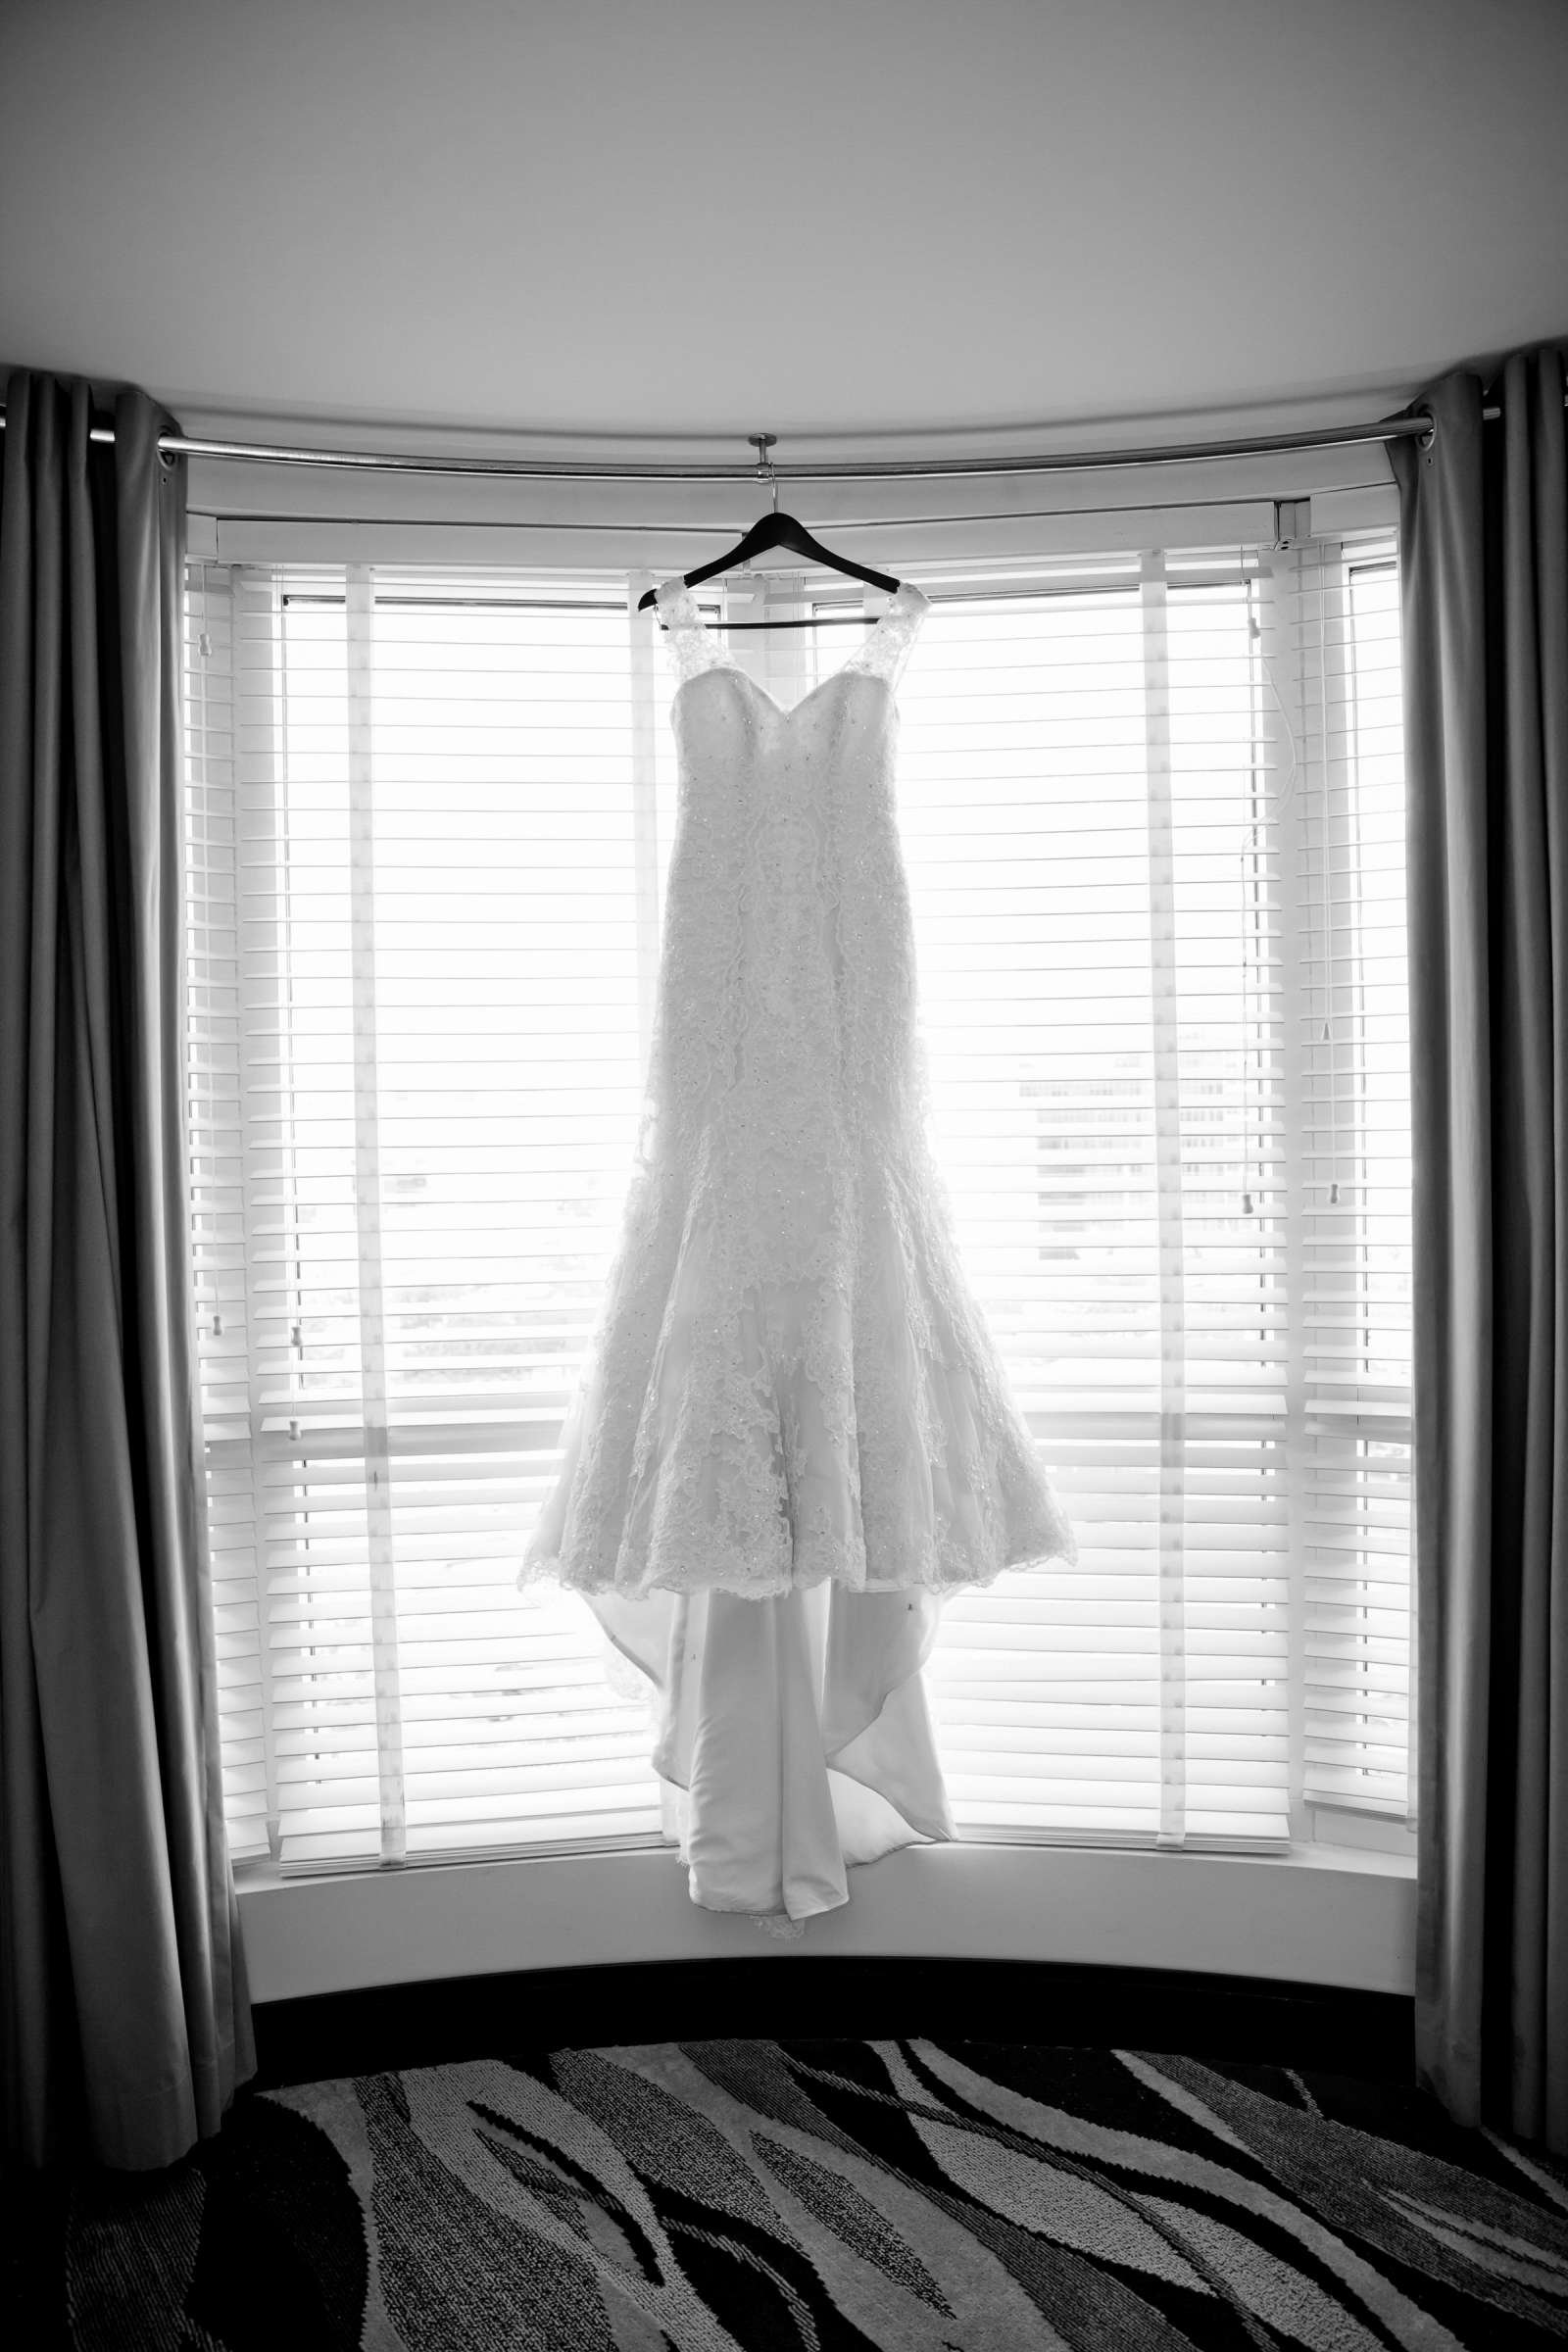 Wedding Dress at The Prado Wedding coordinated by First Comes Love Weddings & Events, Erin and Peter Wedding Photo #8 by True Photography